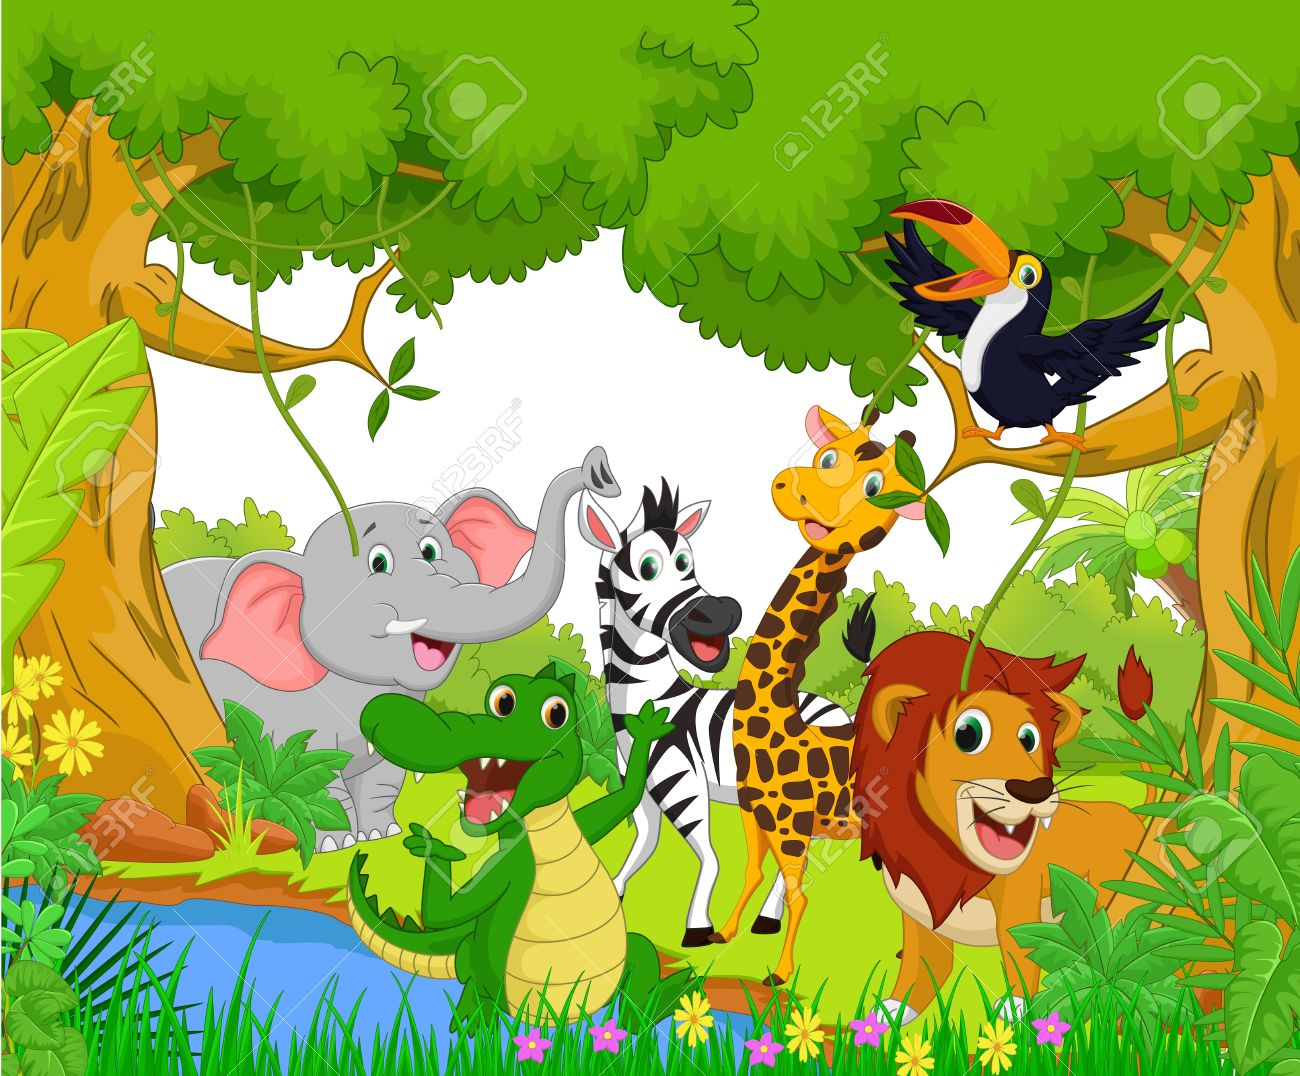 Animal Cartoon In The Jungle Royalty Free Cliparts Vectors And Stock Illustration Image 49620738